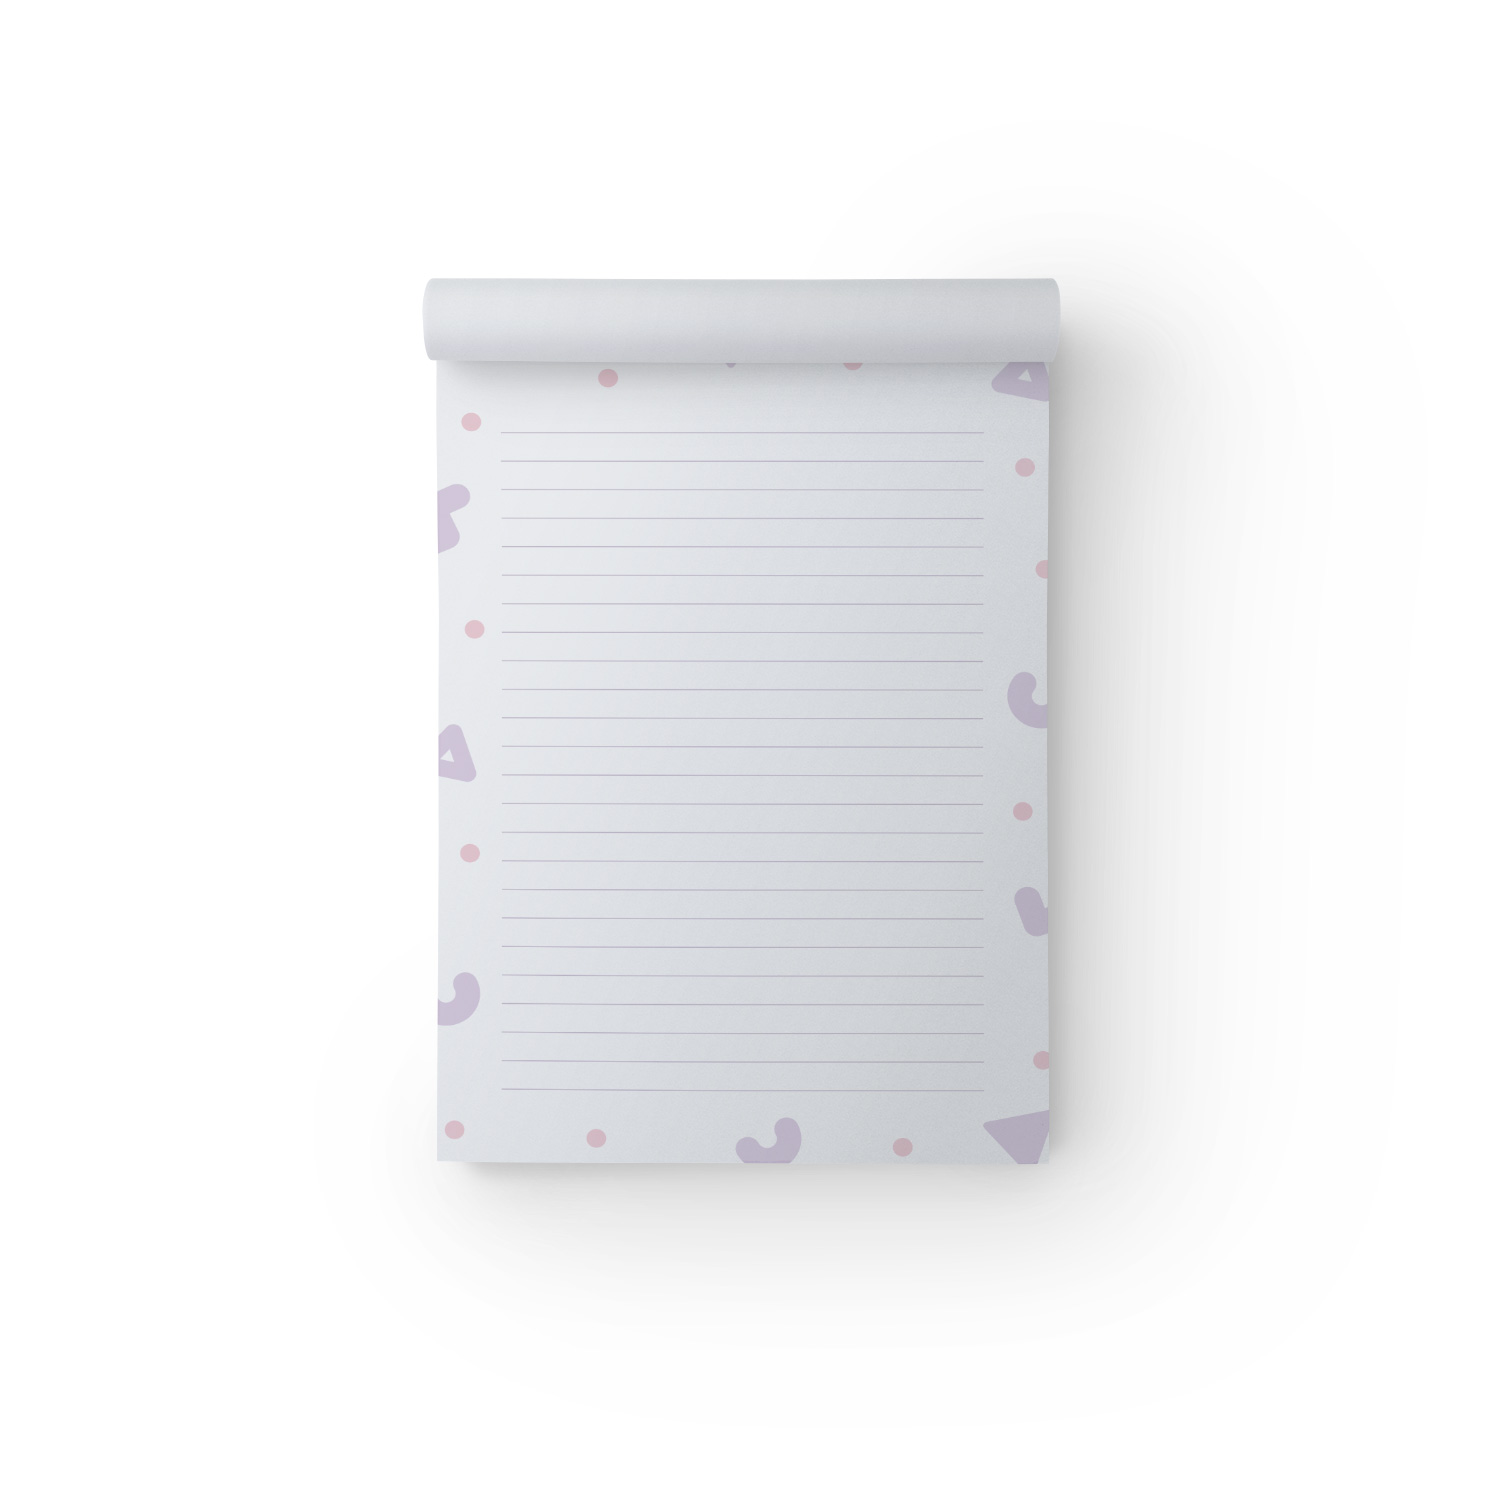 Purple Shapes A5 Notepad